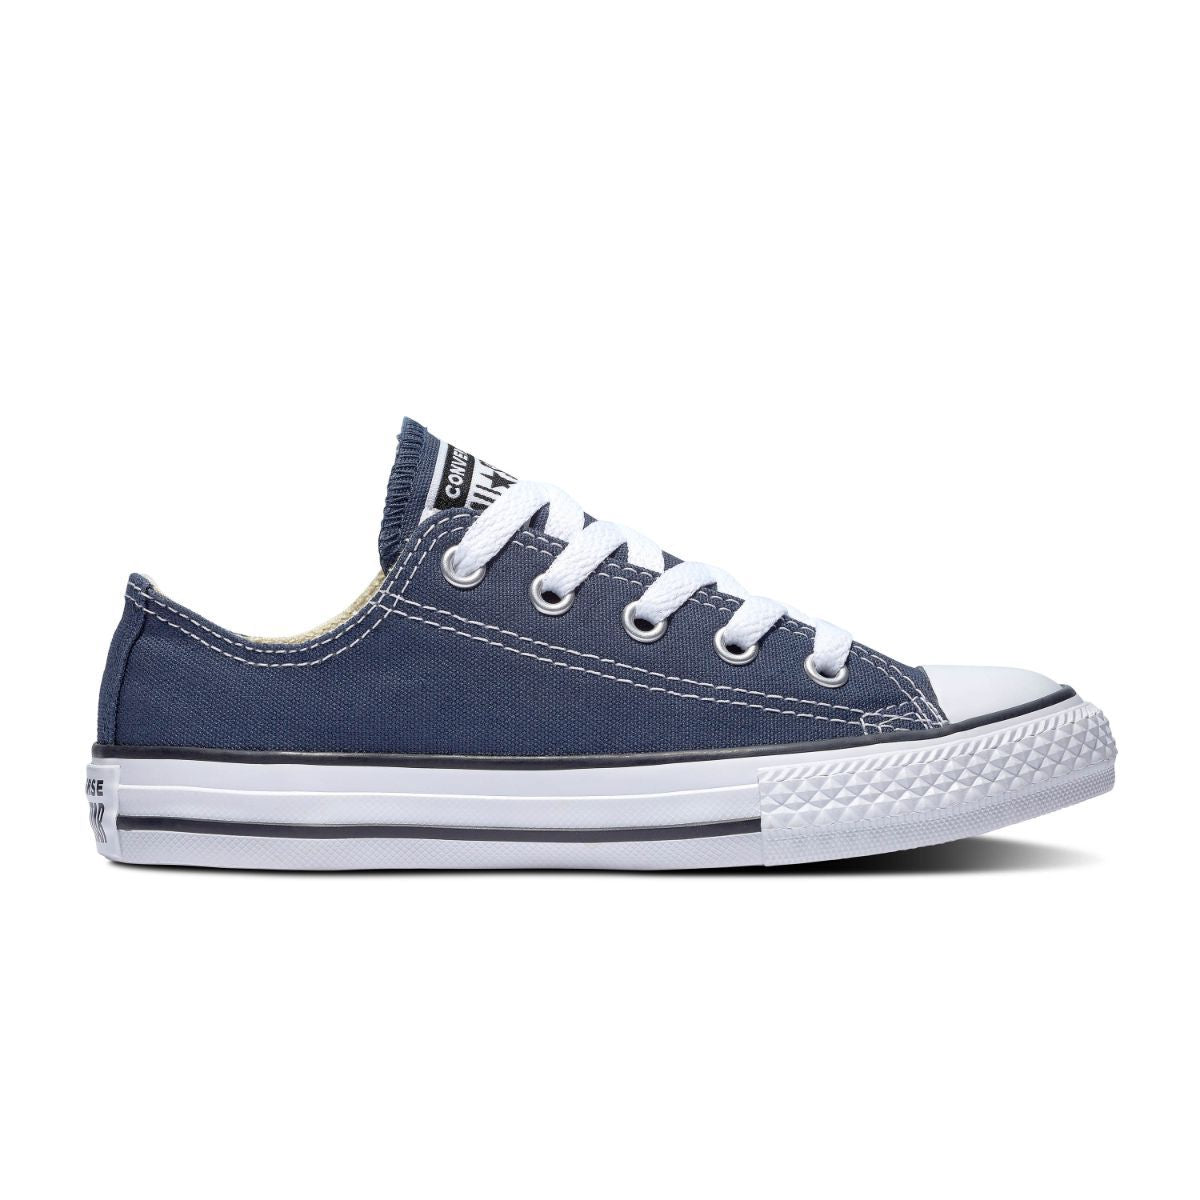 Little Kids Chuck Taylor All Star Navy Low Top